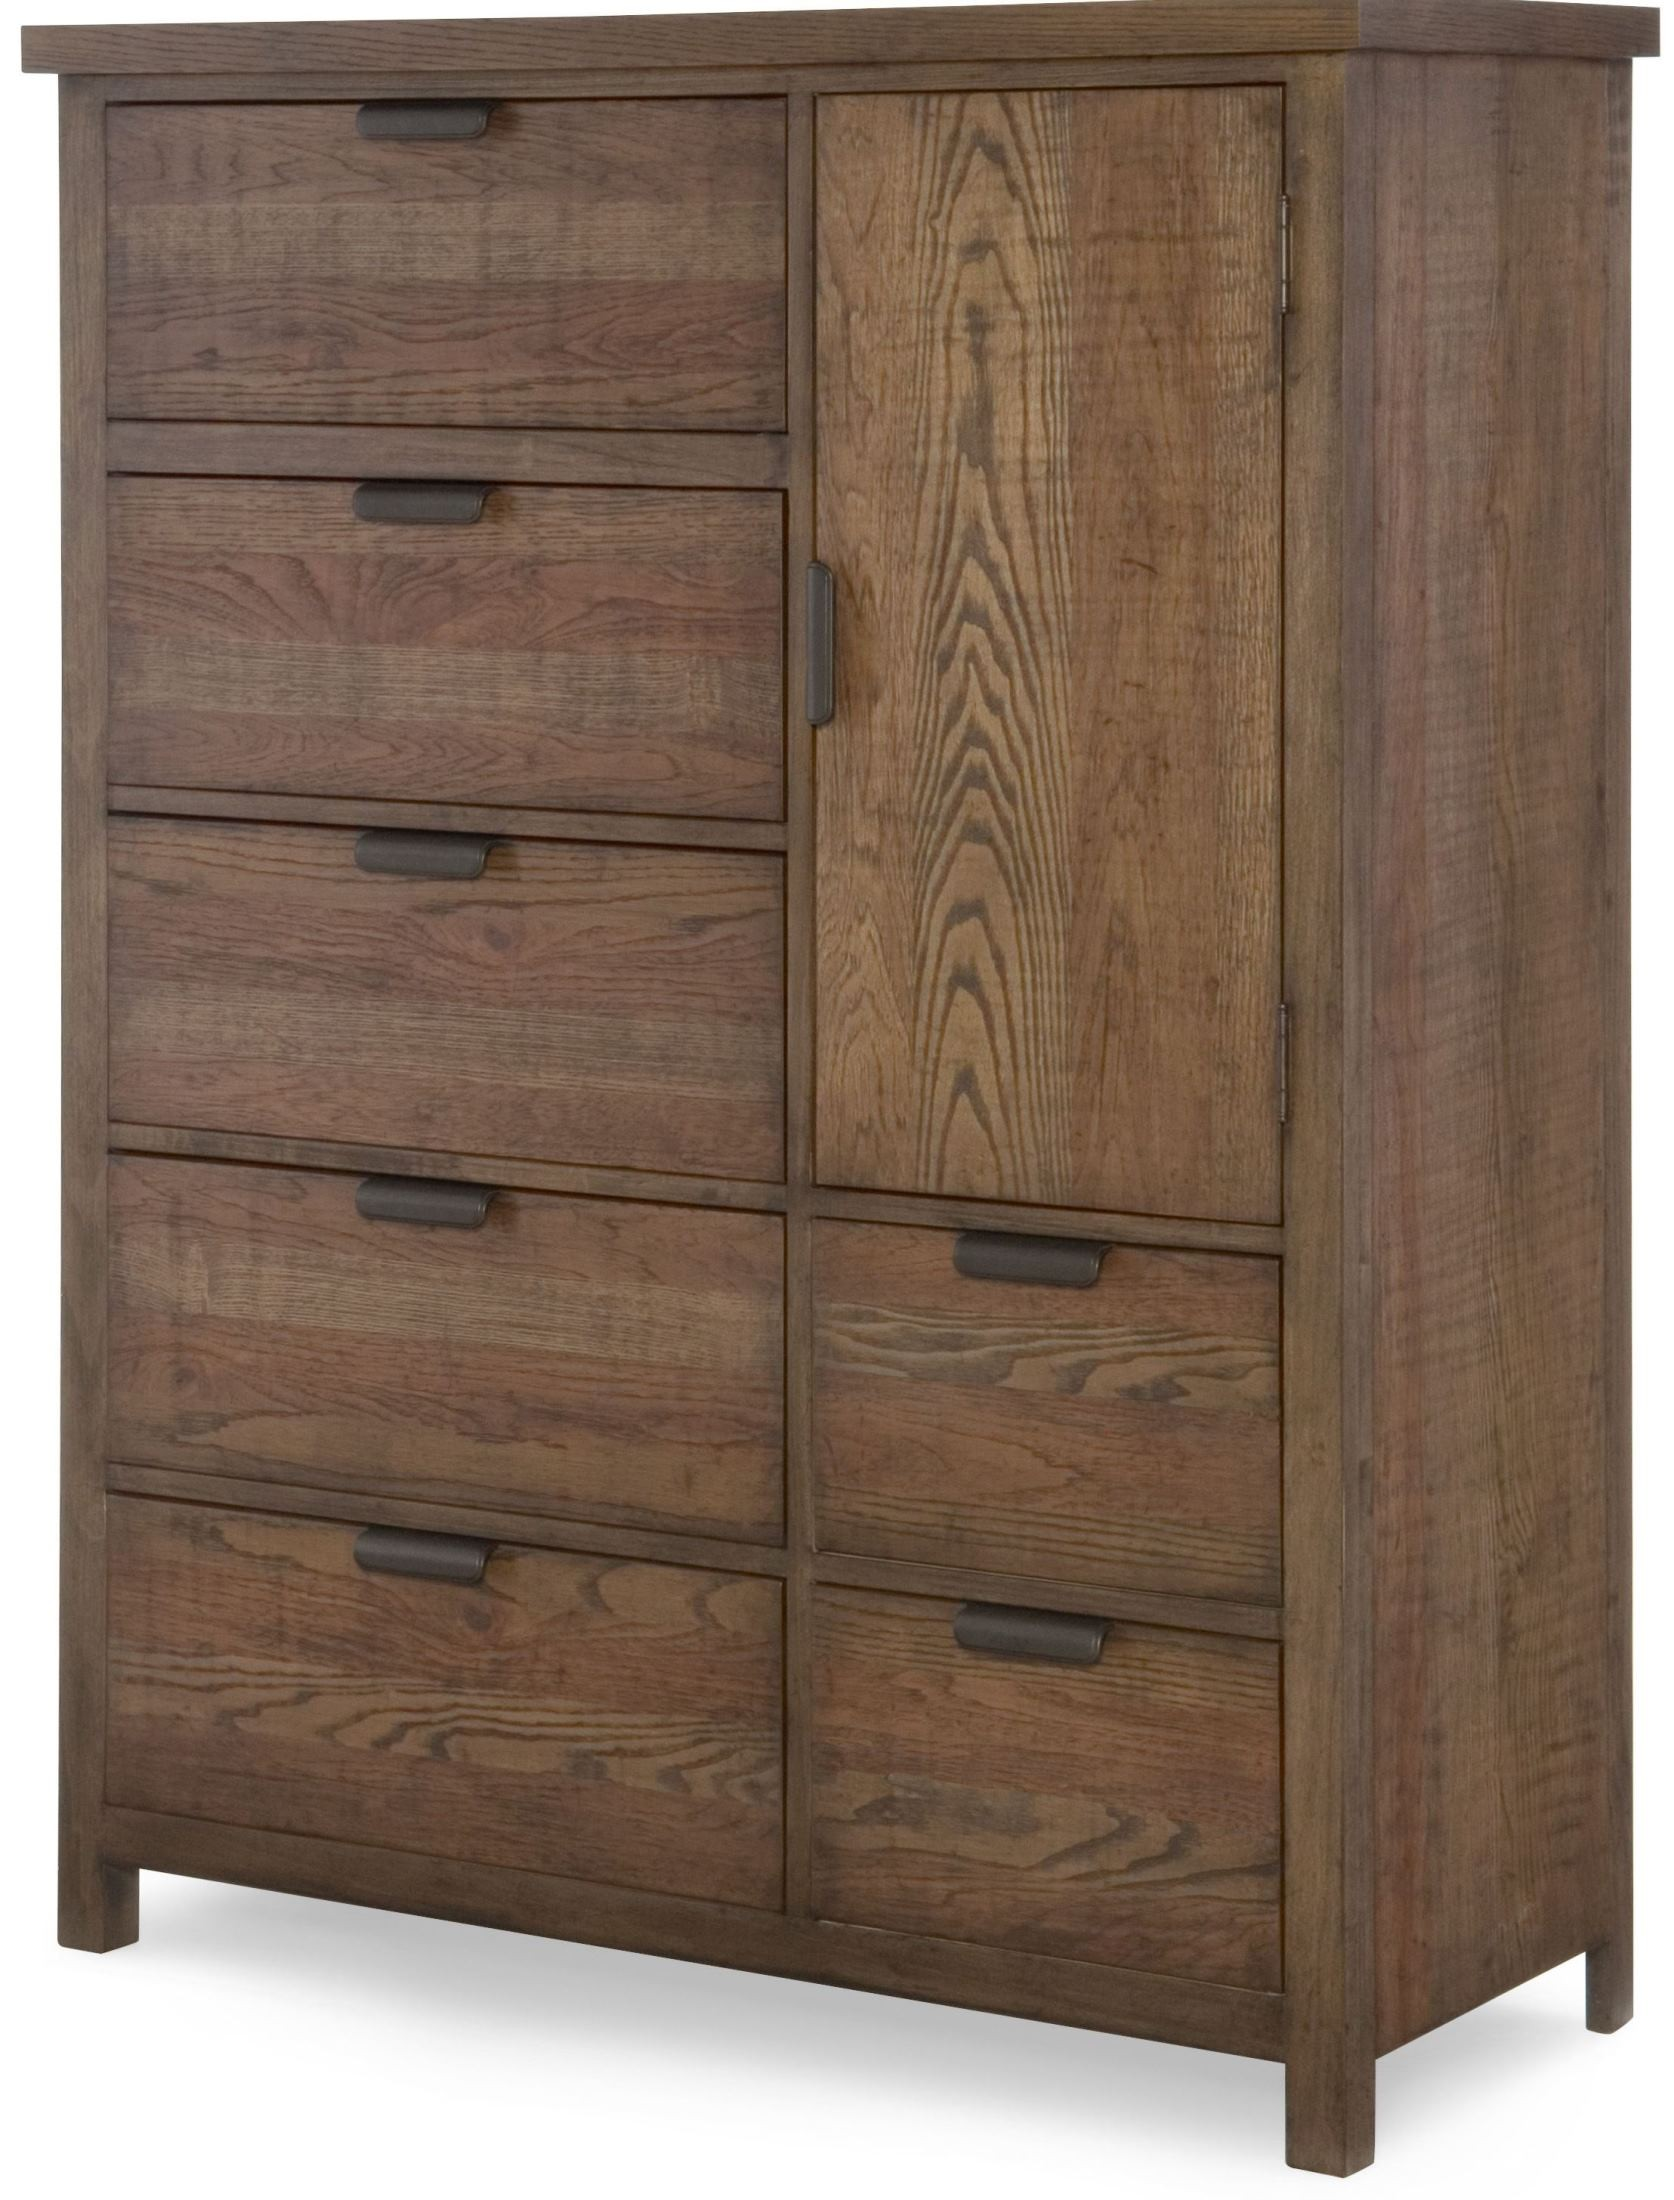 Fulton County Tawny Brown Door Chest From Legacy Kids Coleman Furniture